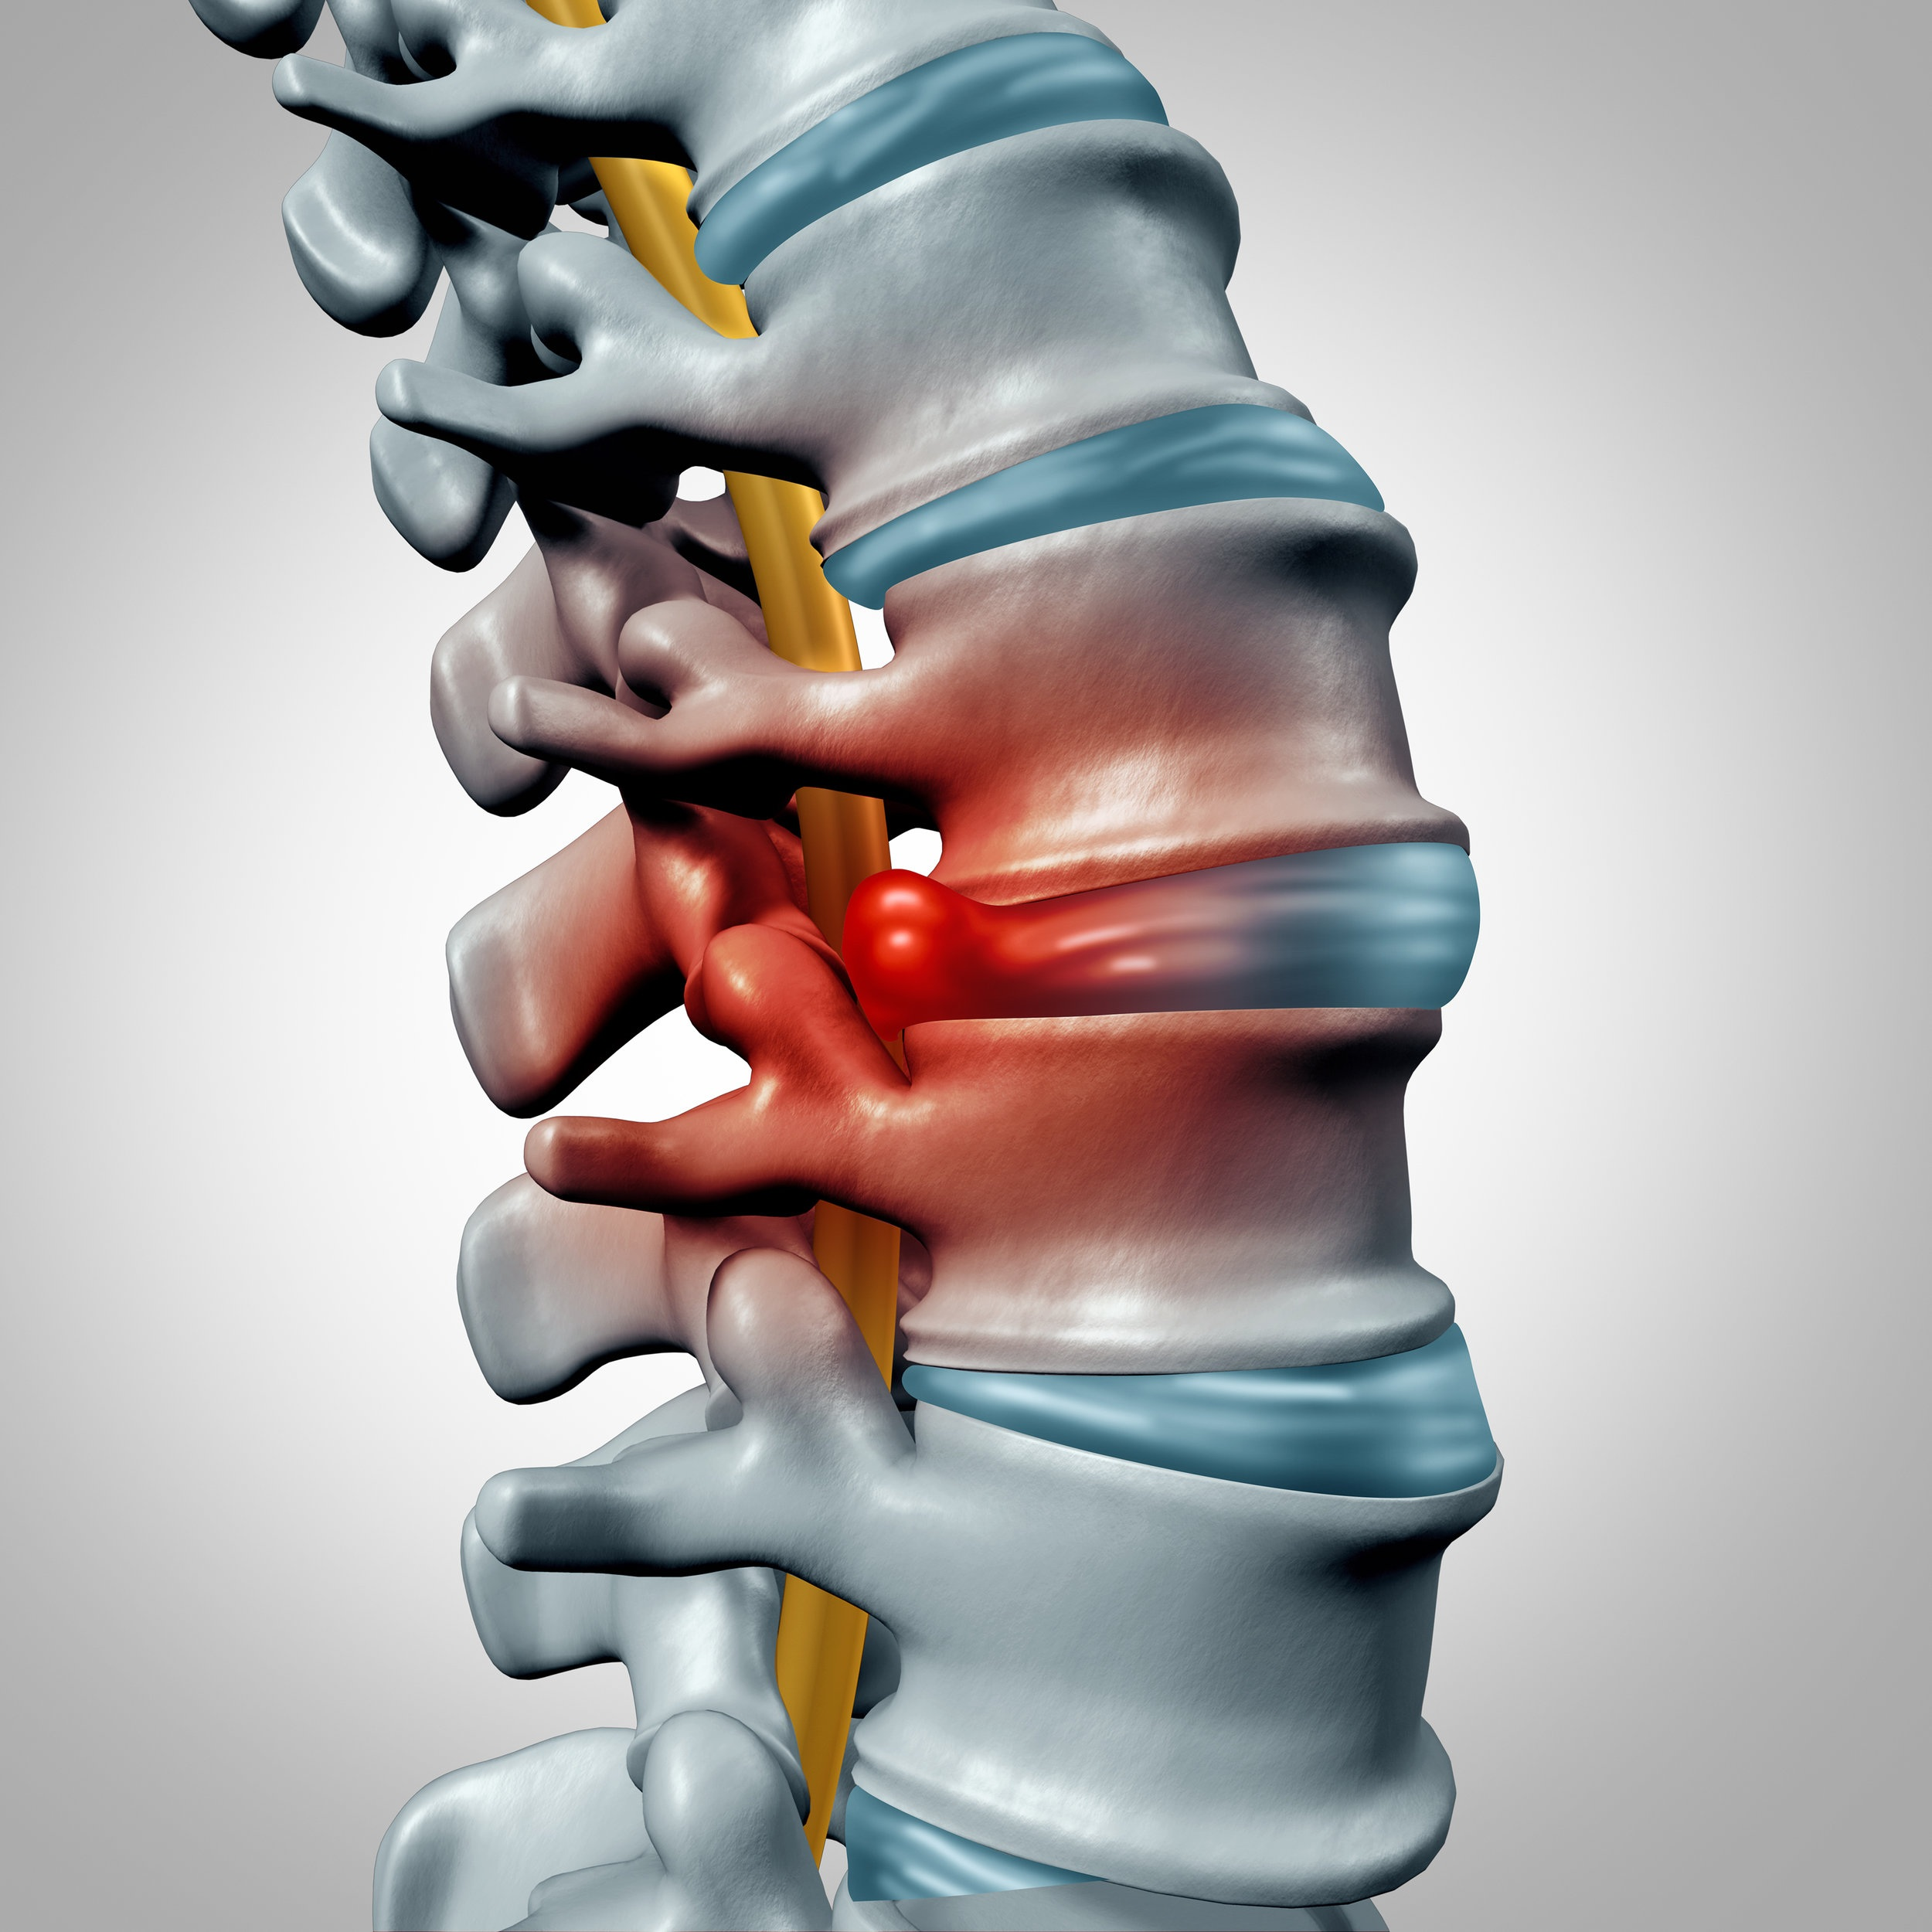 Spinal Decompression - Innovative technology to alleviate disc and back pain